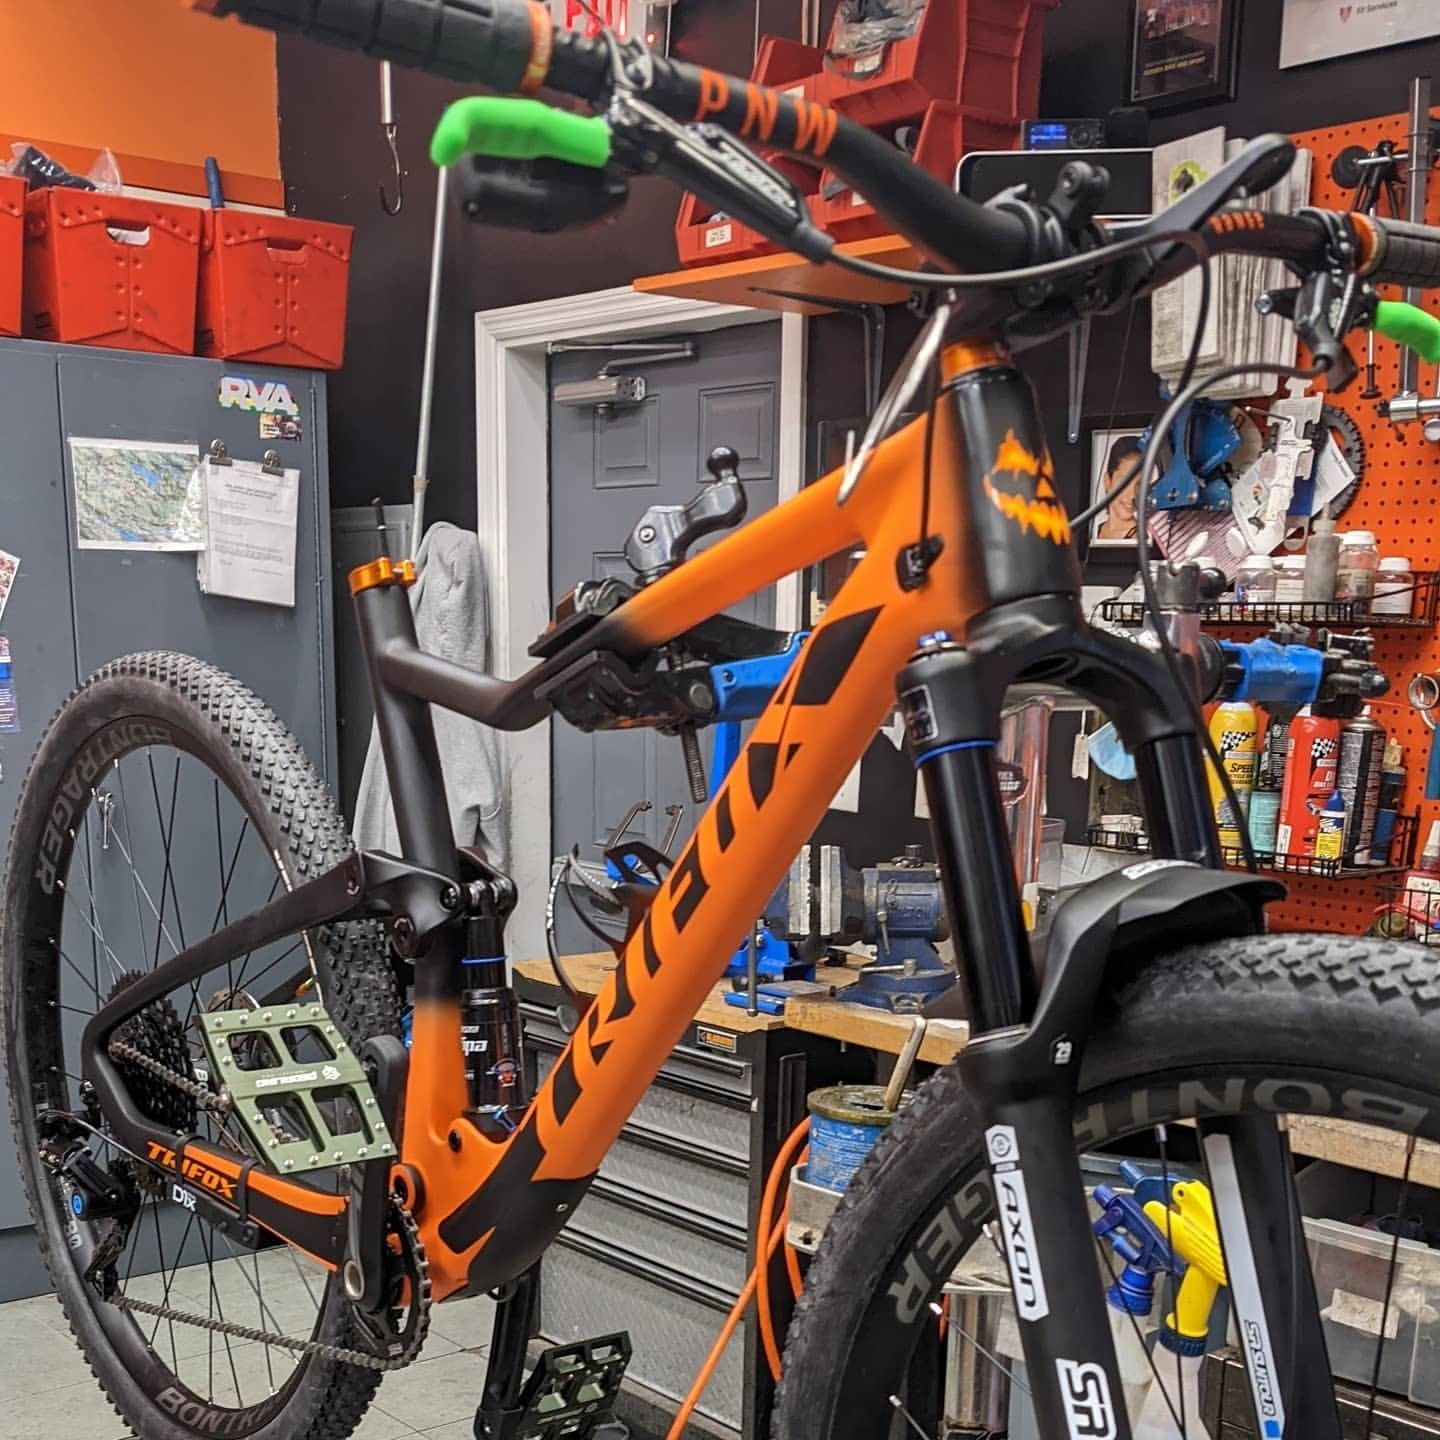 Carbon Fiber Mountain Bike with Locked pedals